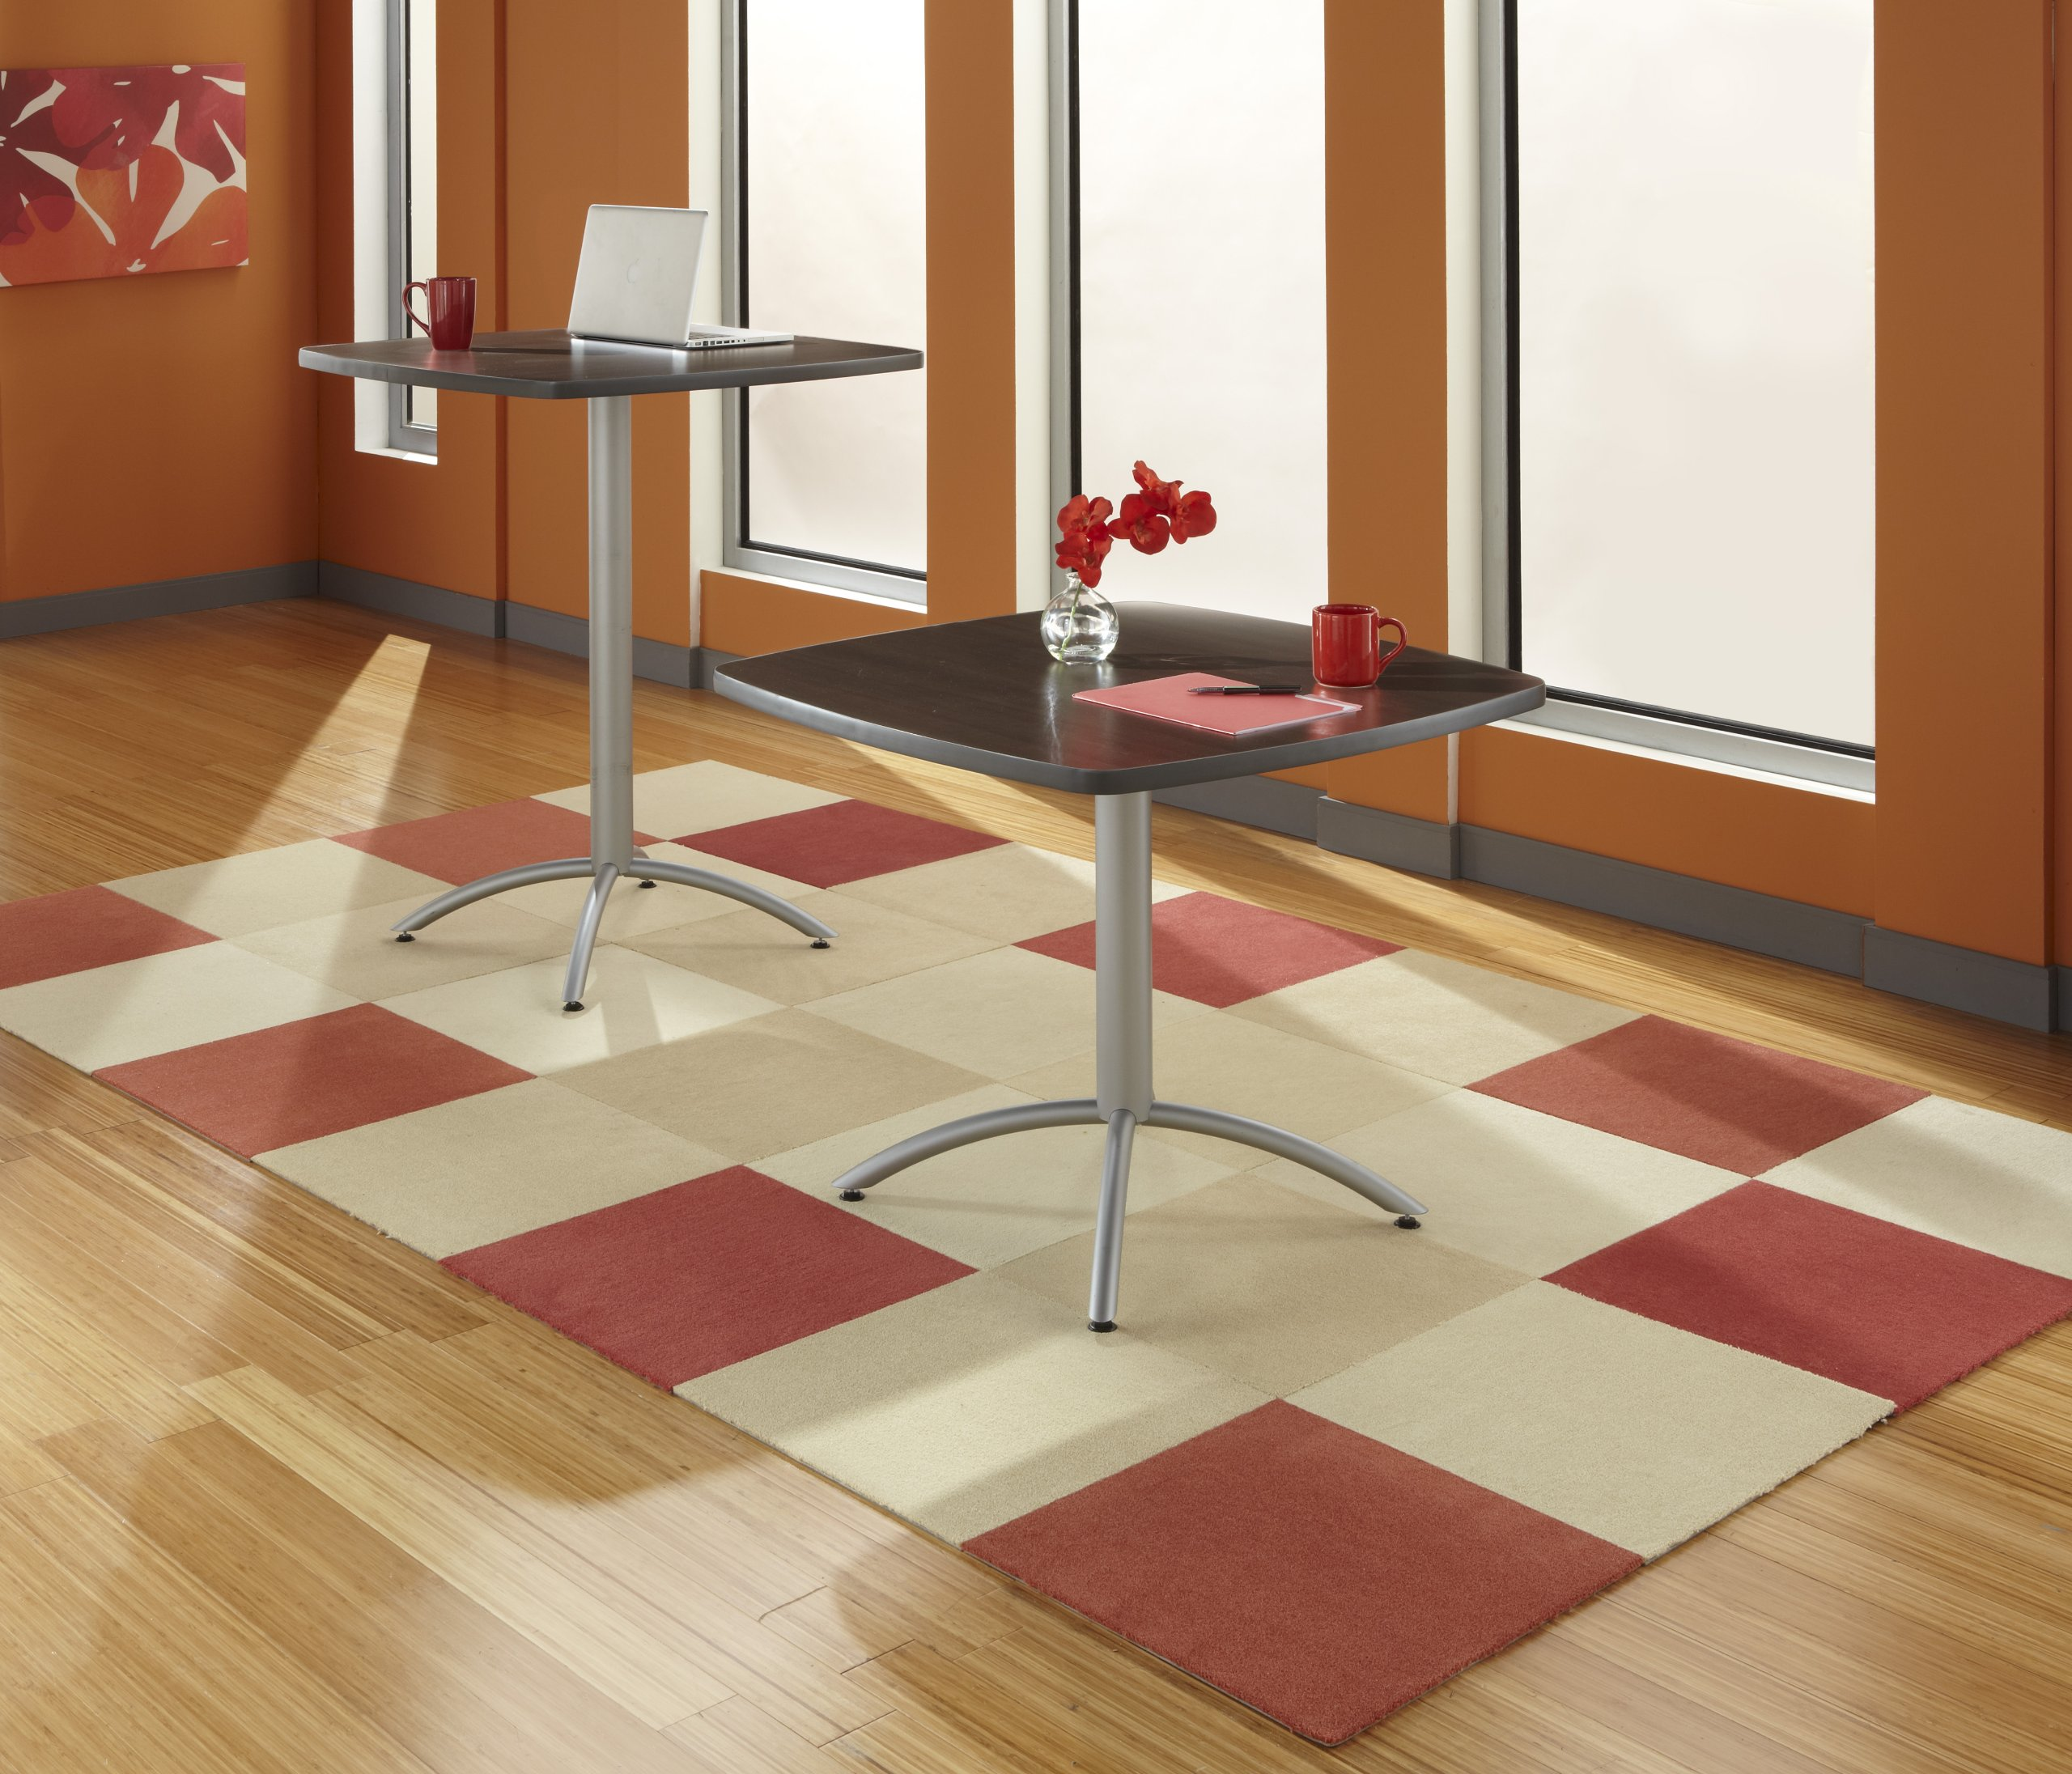 Iceberg ICE65634 CafeWorks Square Bistro Table with Powder-Coated Steel Base, 36'' Length x 36'' Width x 42'' Height, Walnut